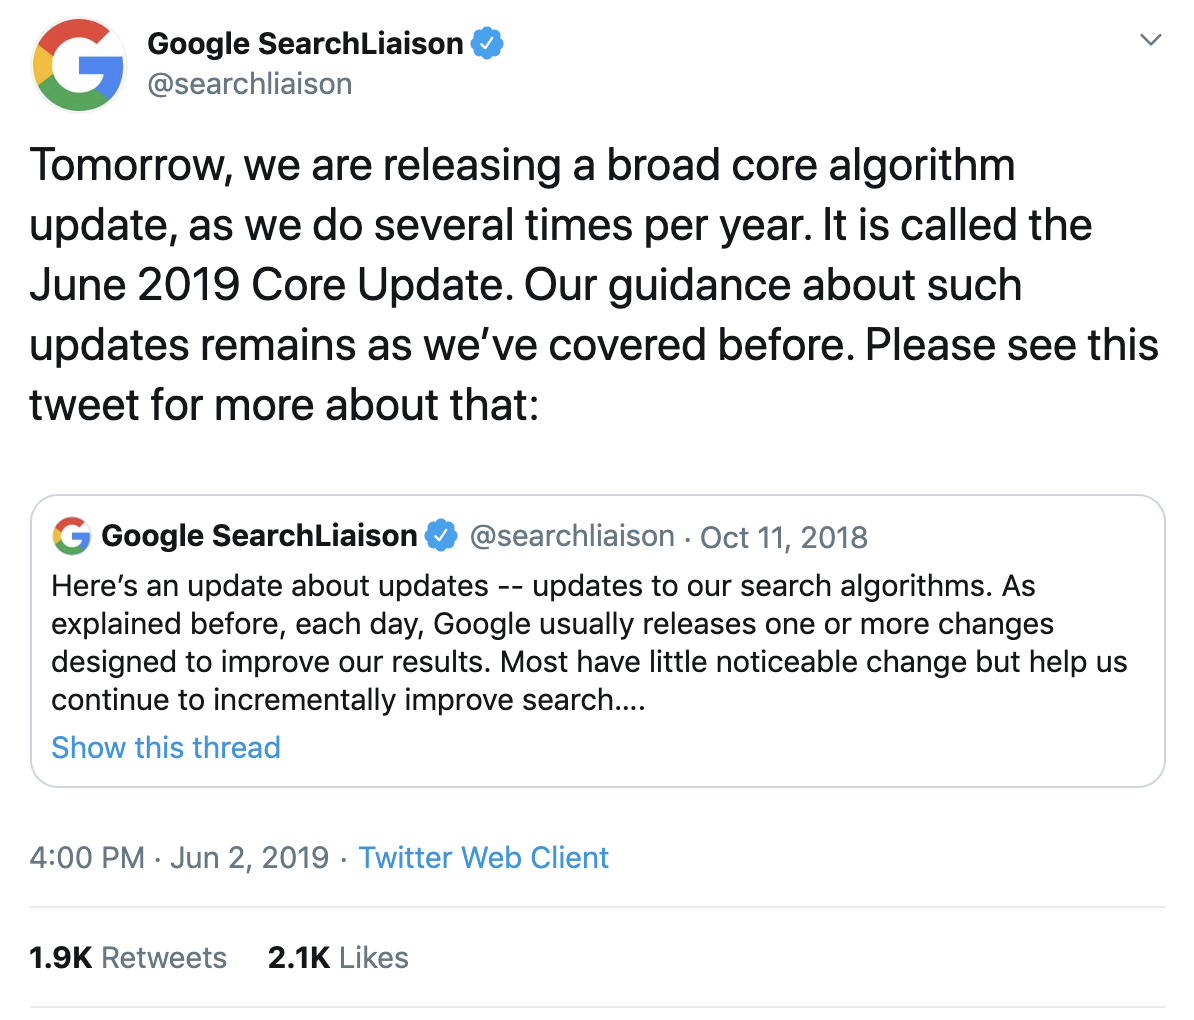 Google Sear Liaison's tweet on its 2019 Google core algorithm updates